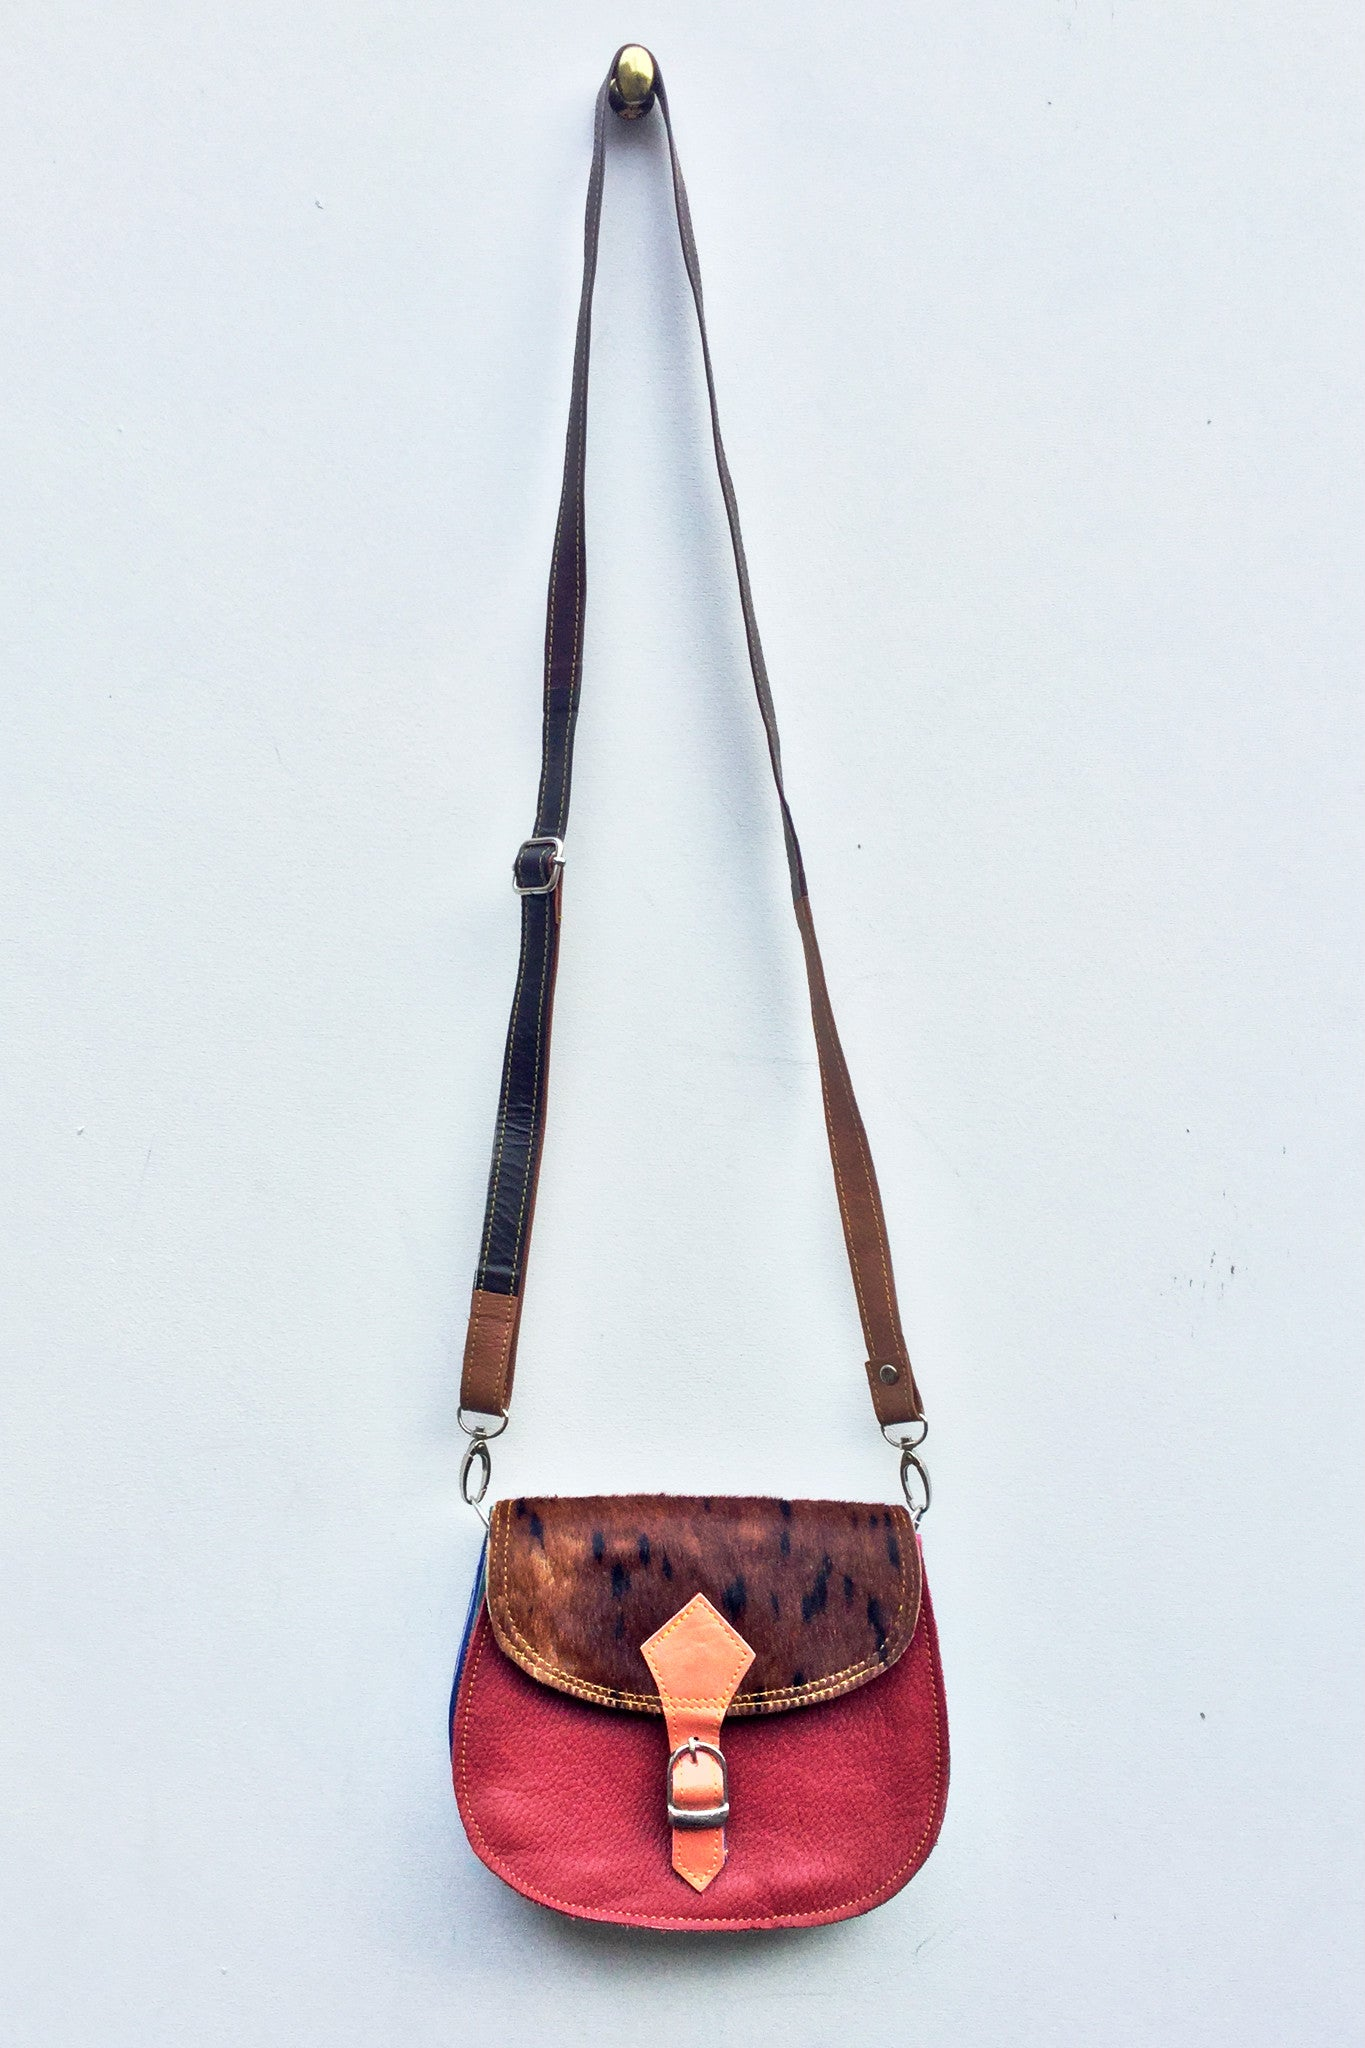 sketch london animal print saddle shape cross body bag red cherry pony print leather bag ethical sustainable